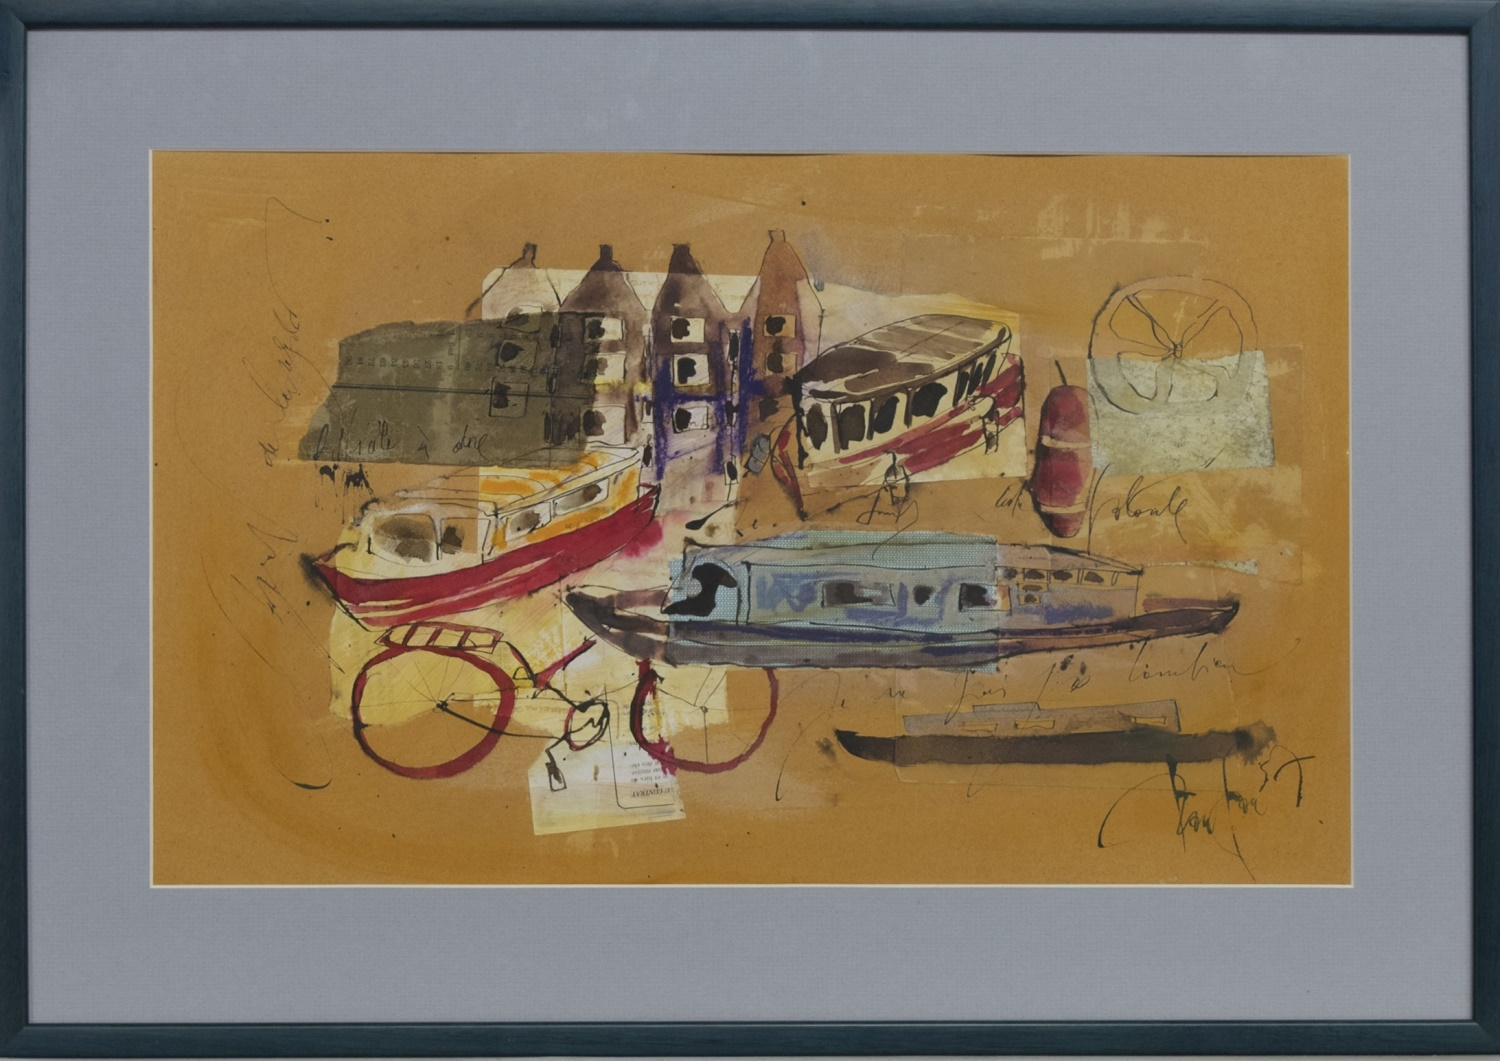 BATEAUX, A MIXED MEDIA BY CECILE COLOMBO